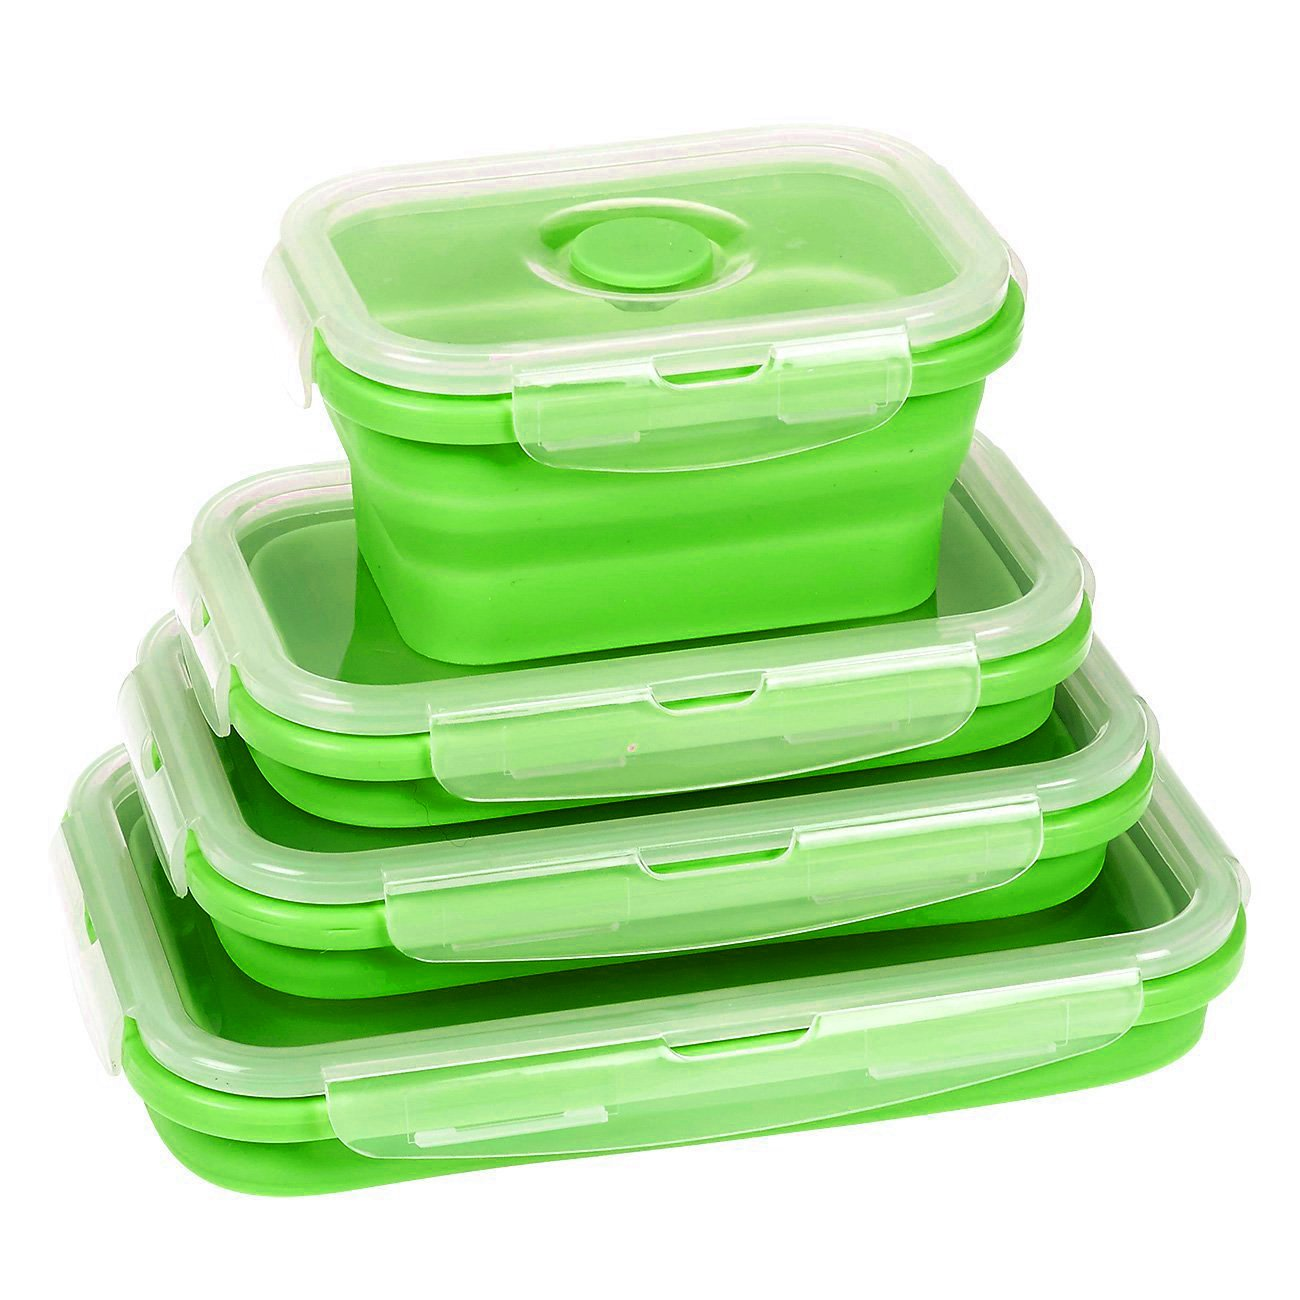 Wolecok 4 Pack (350ML, 500ML, 800ML, 1200ML) Silicone Collapsible Lunch Box, Microwave, Dishwasher and Freezer to Oven Safe (Green)